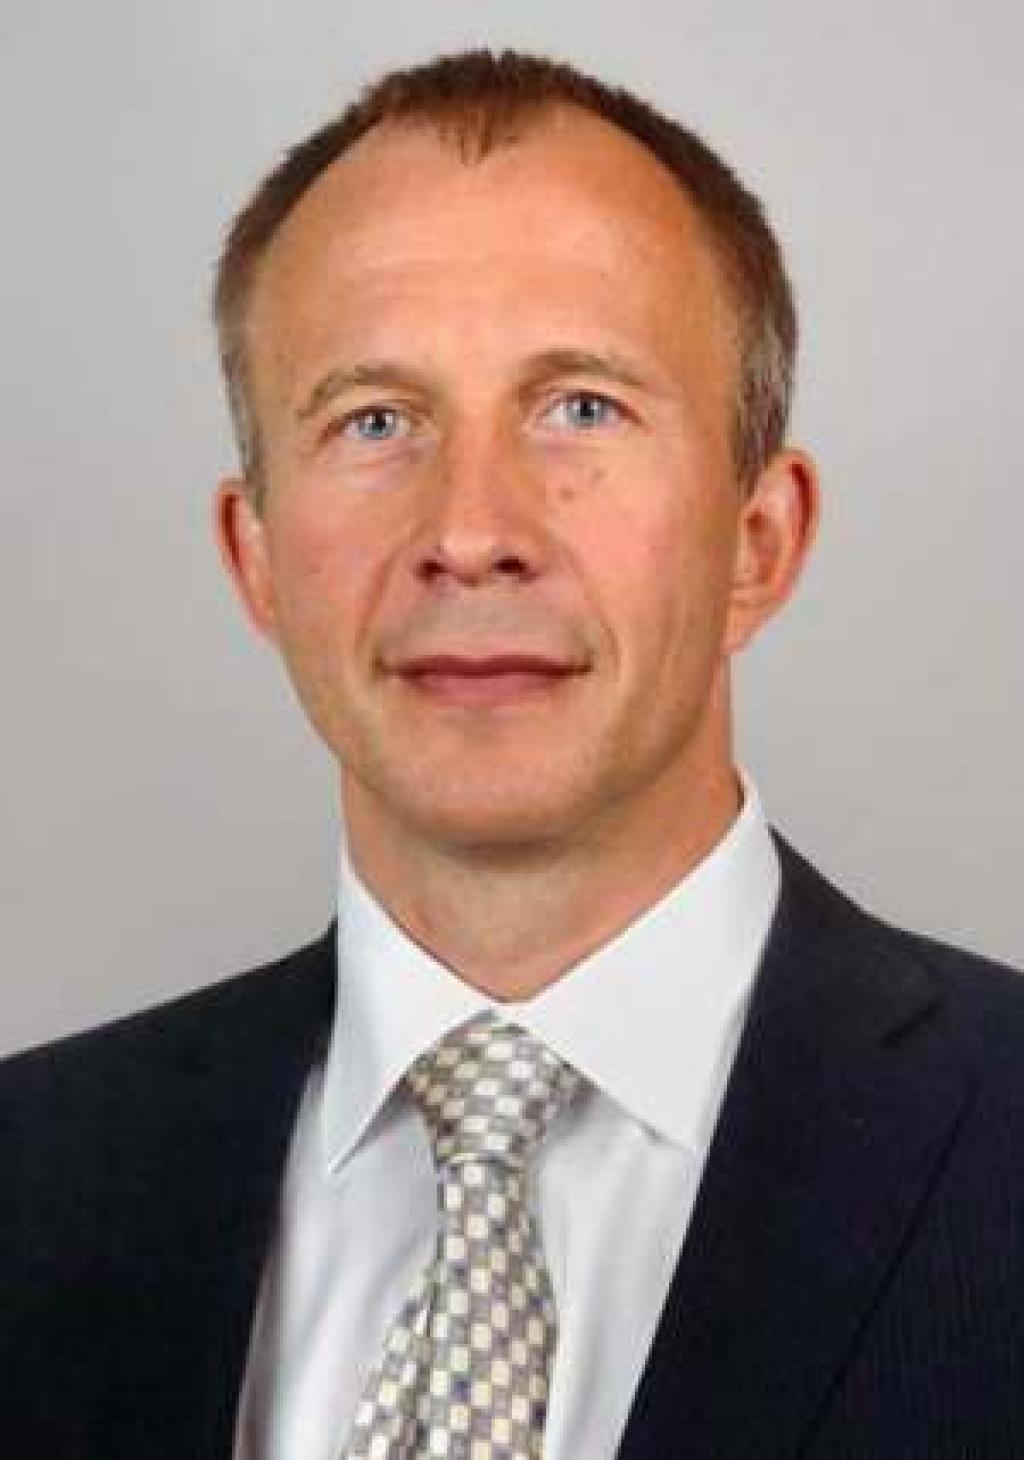 Letter from EJU President Sergey Soloveychik